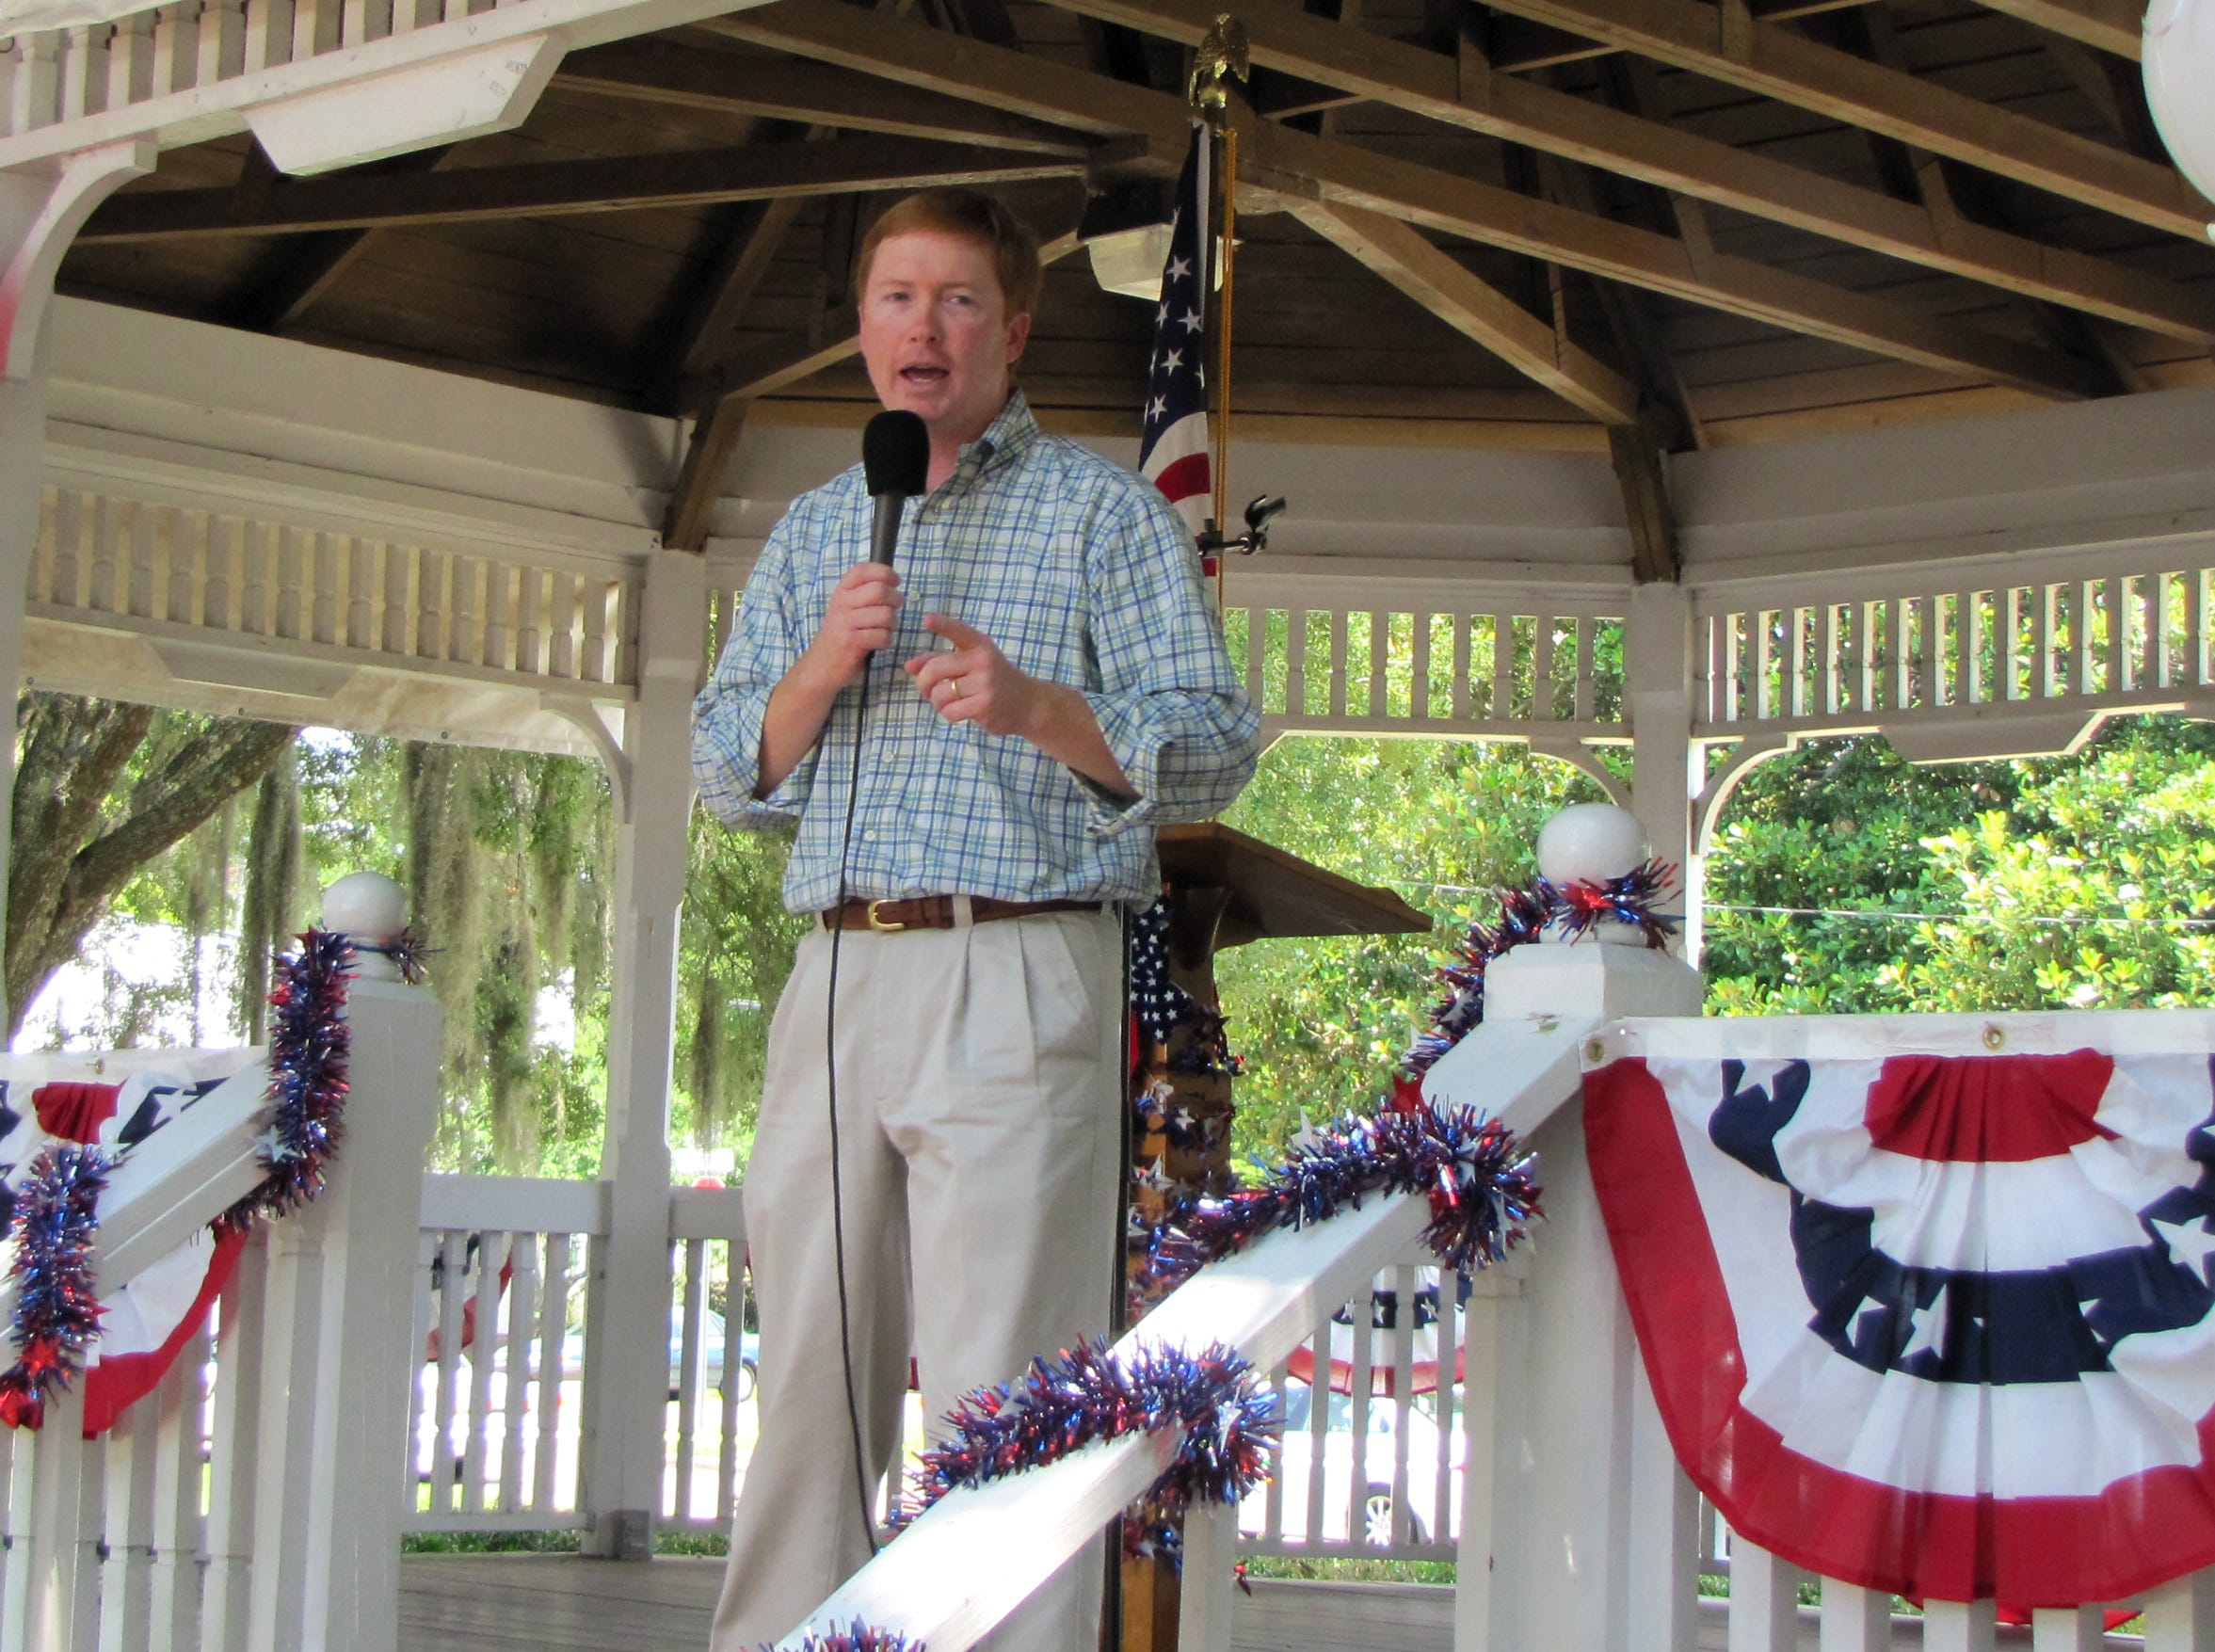 """U.S. Rep. Adam Putnam, the Republican candidate for Florida agriculture commissioner, speaks at a rally Saturday at the gazebo of a park next to the Madison County Courthouse in Madison, Fla. Putnam said Florida Republicans """"have a chance to put a whole new team on the field"""" this year with open races for the U.S. Senate, governor and all three state Cabinet seats."""